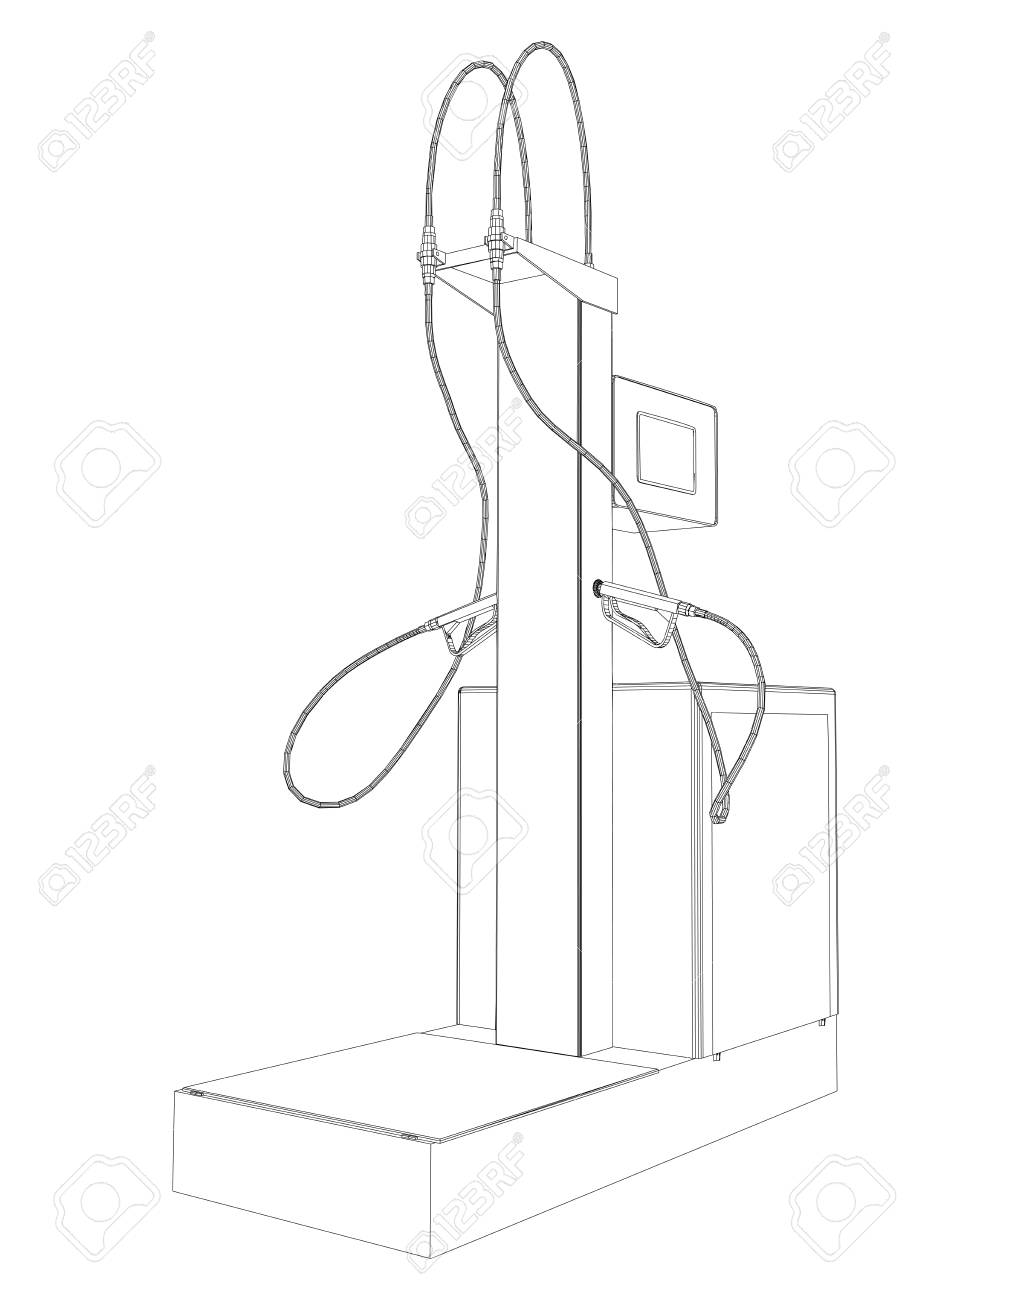 Wire-frame Vector Oil And Gas Station Equipment. Illustration ...